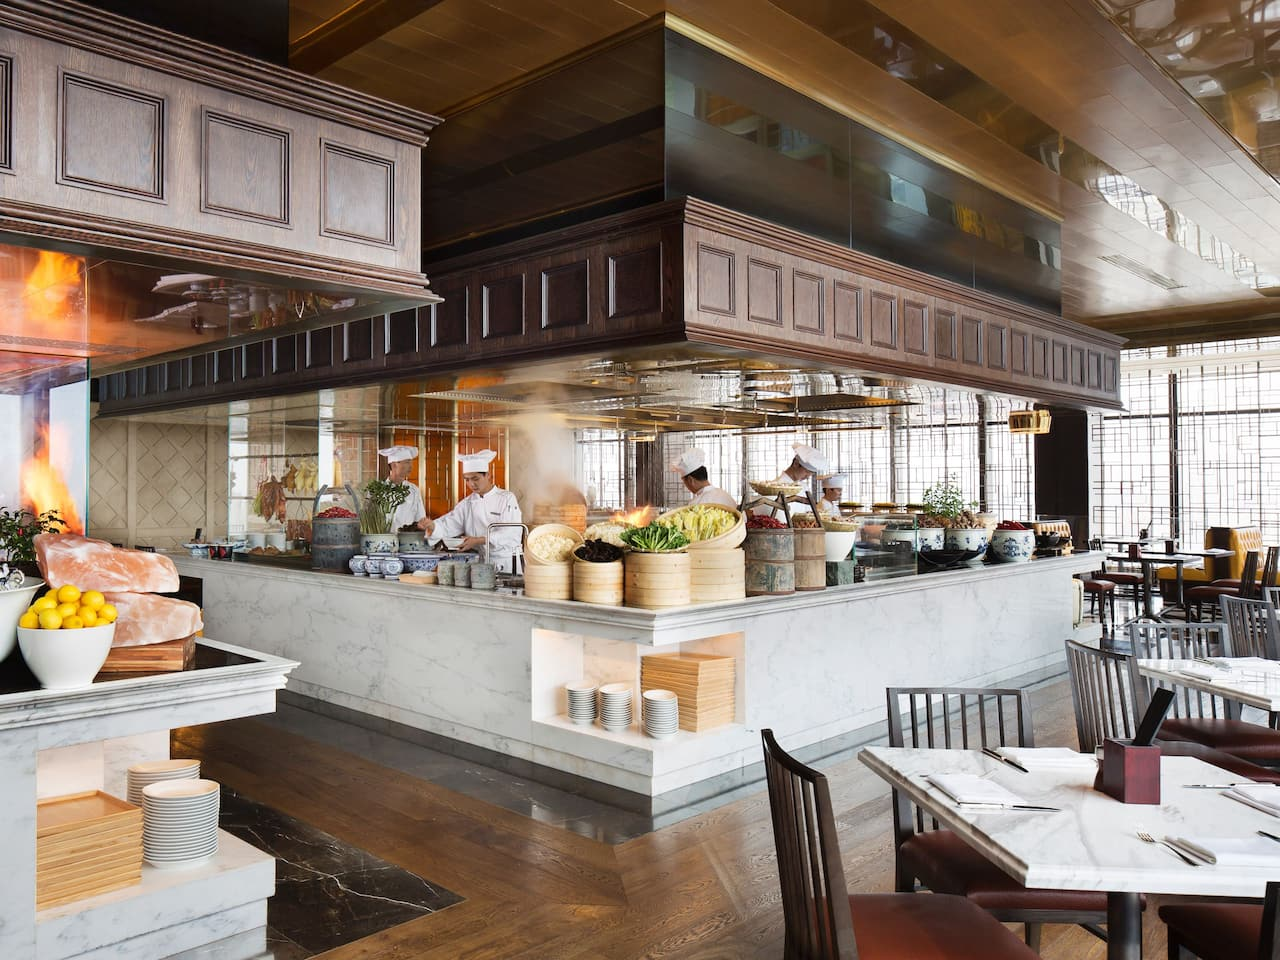 Hyatt Grand Shenyang Cafe Kitchen